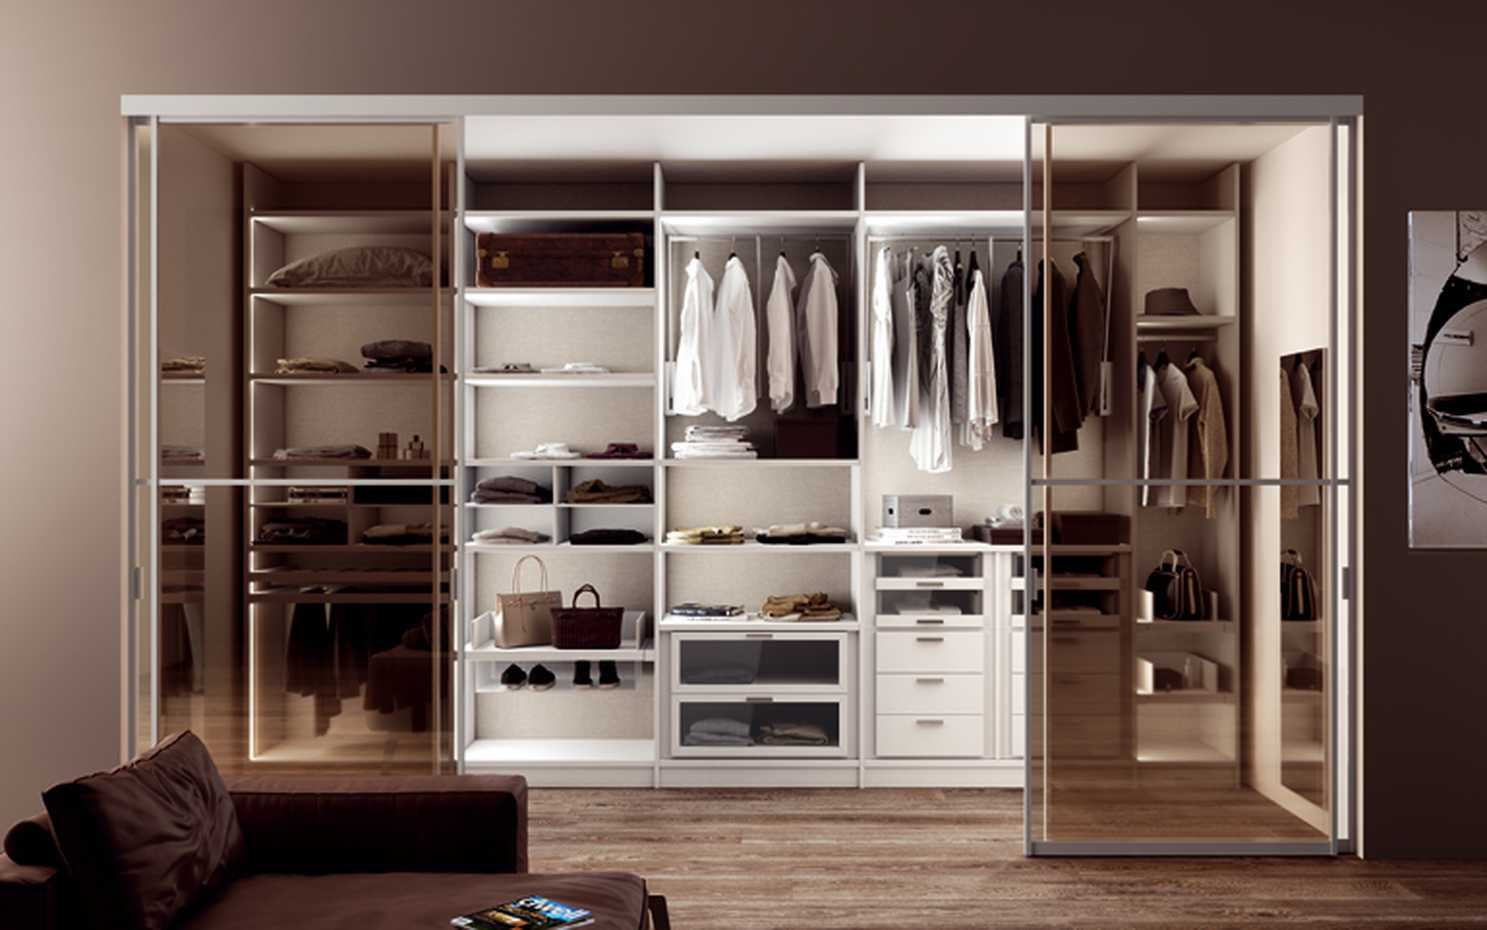 Modular Walk-in Wardrobe by Mercantini product image 1